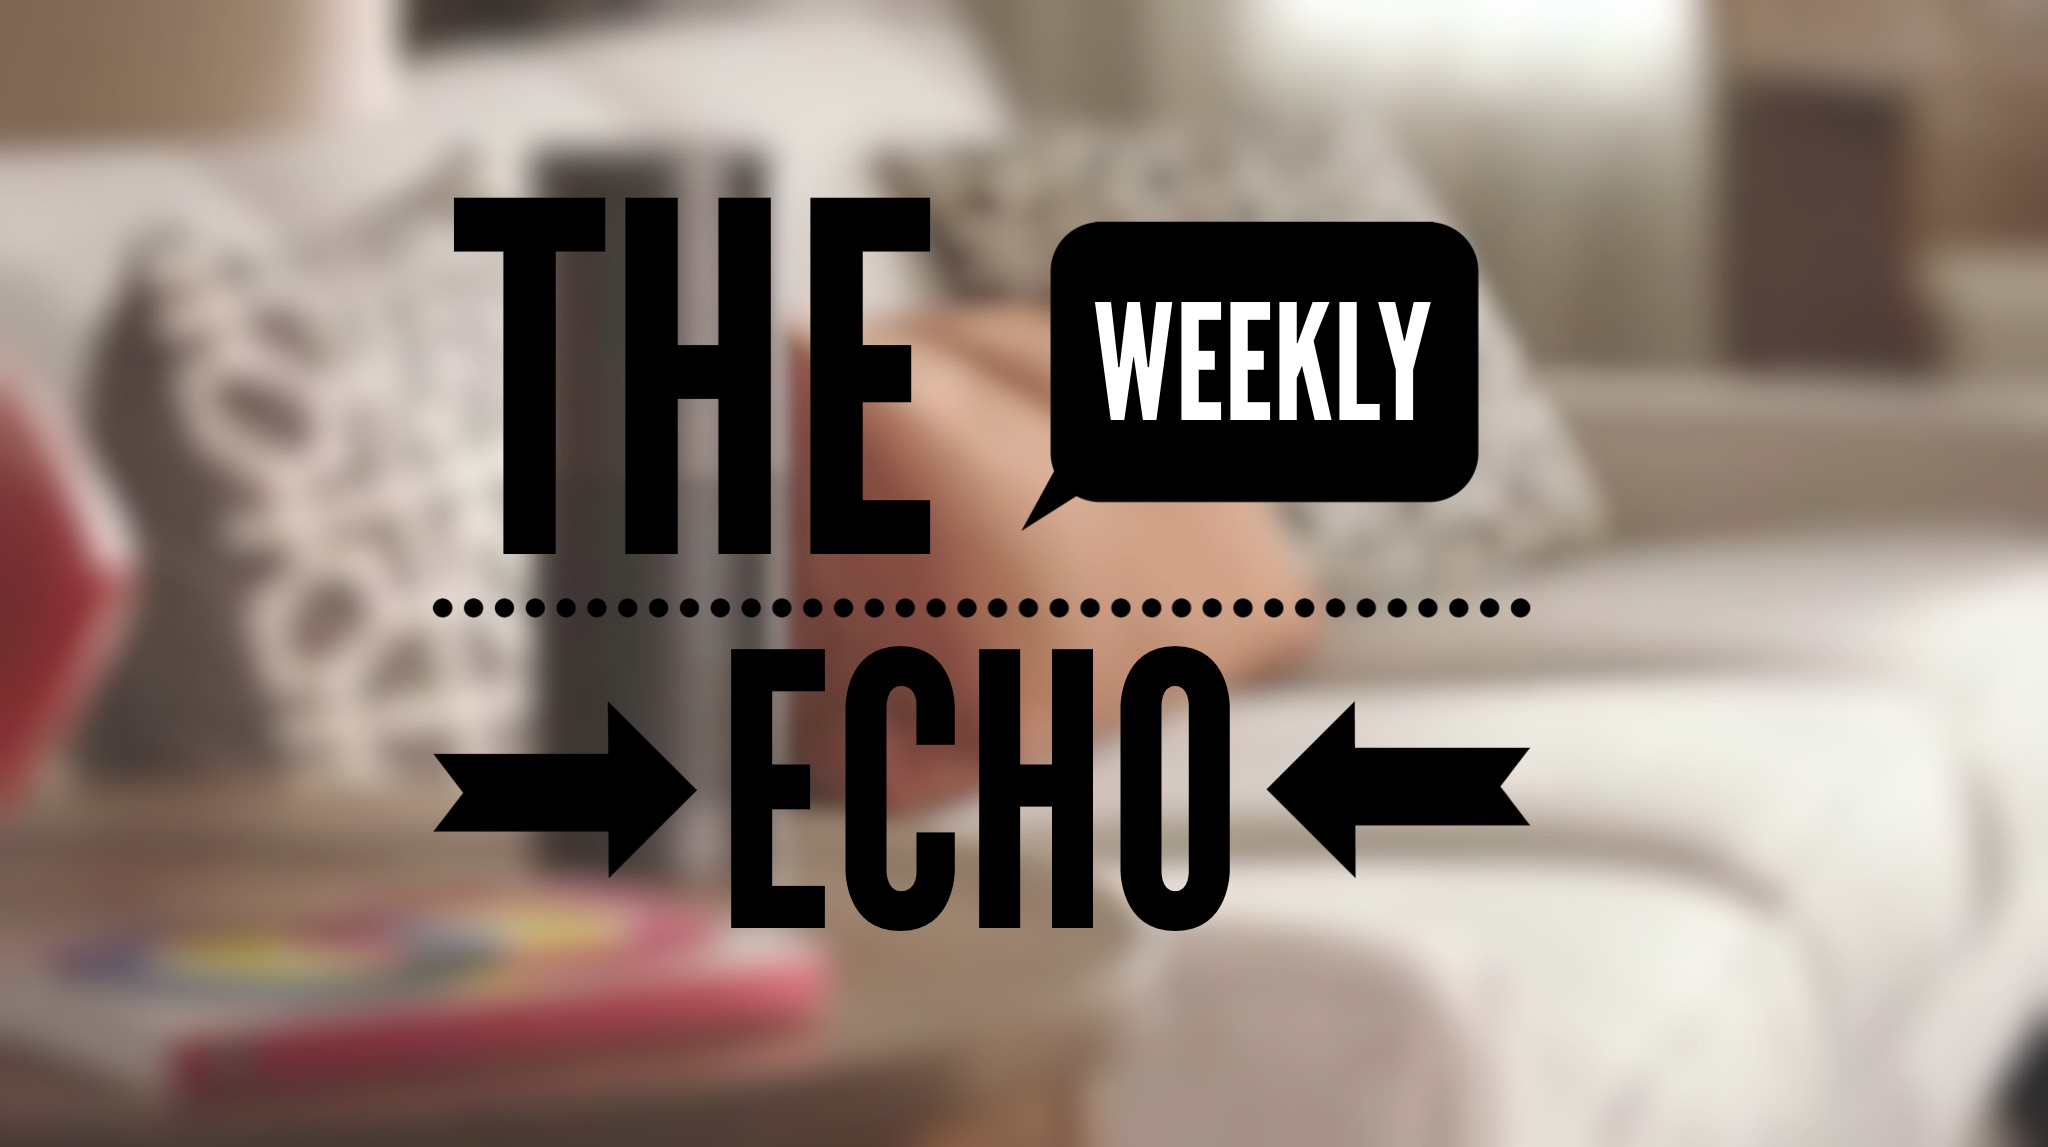 The Weekly Echo: we don't want an Internet of Useless Things